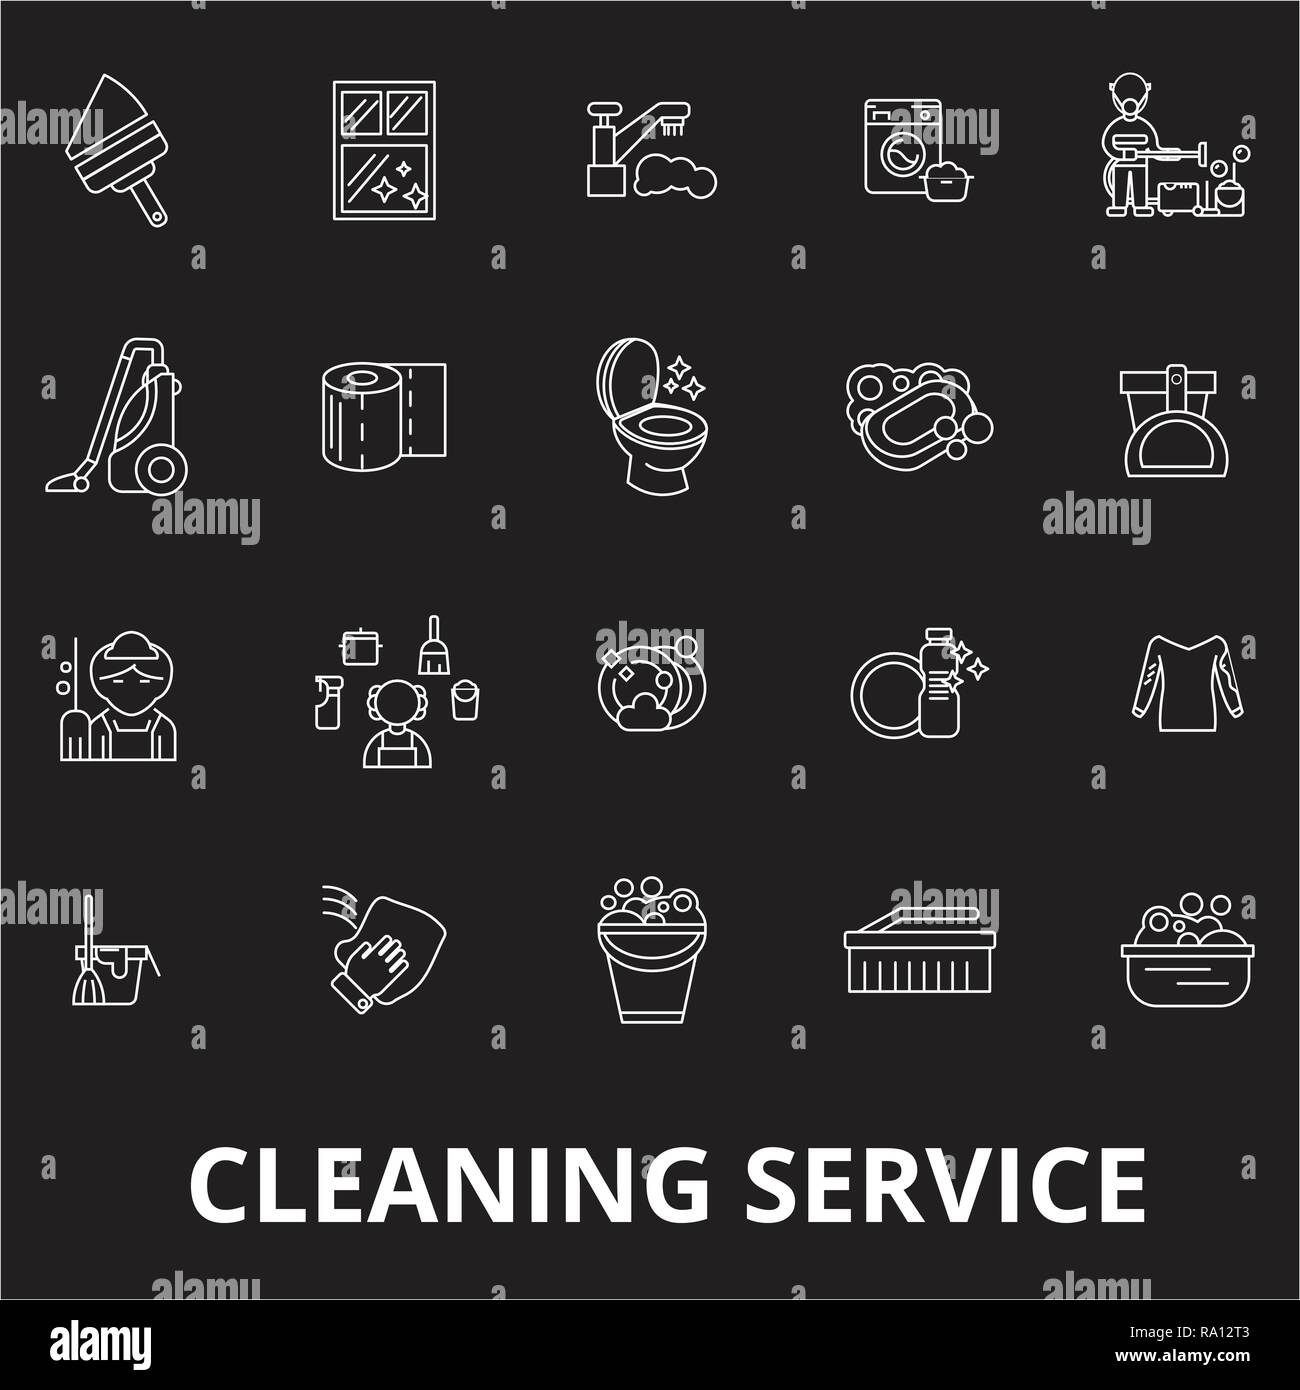 Cleaning service editable line icons vector set on black background. Cleaning service white outline illustrations, signs, symbols - Stock Vector